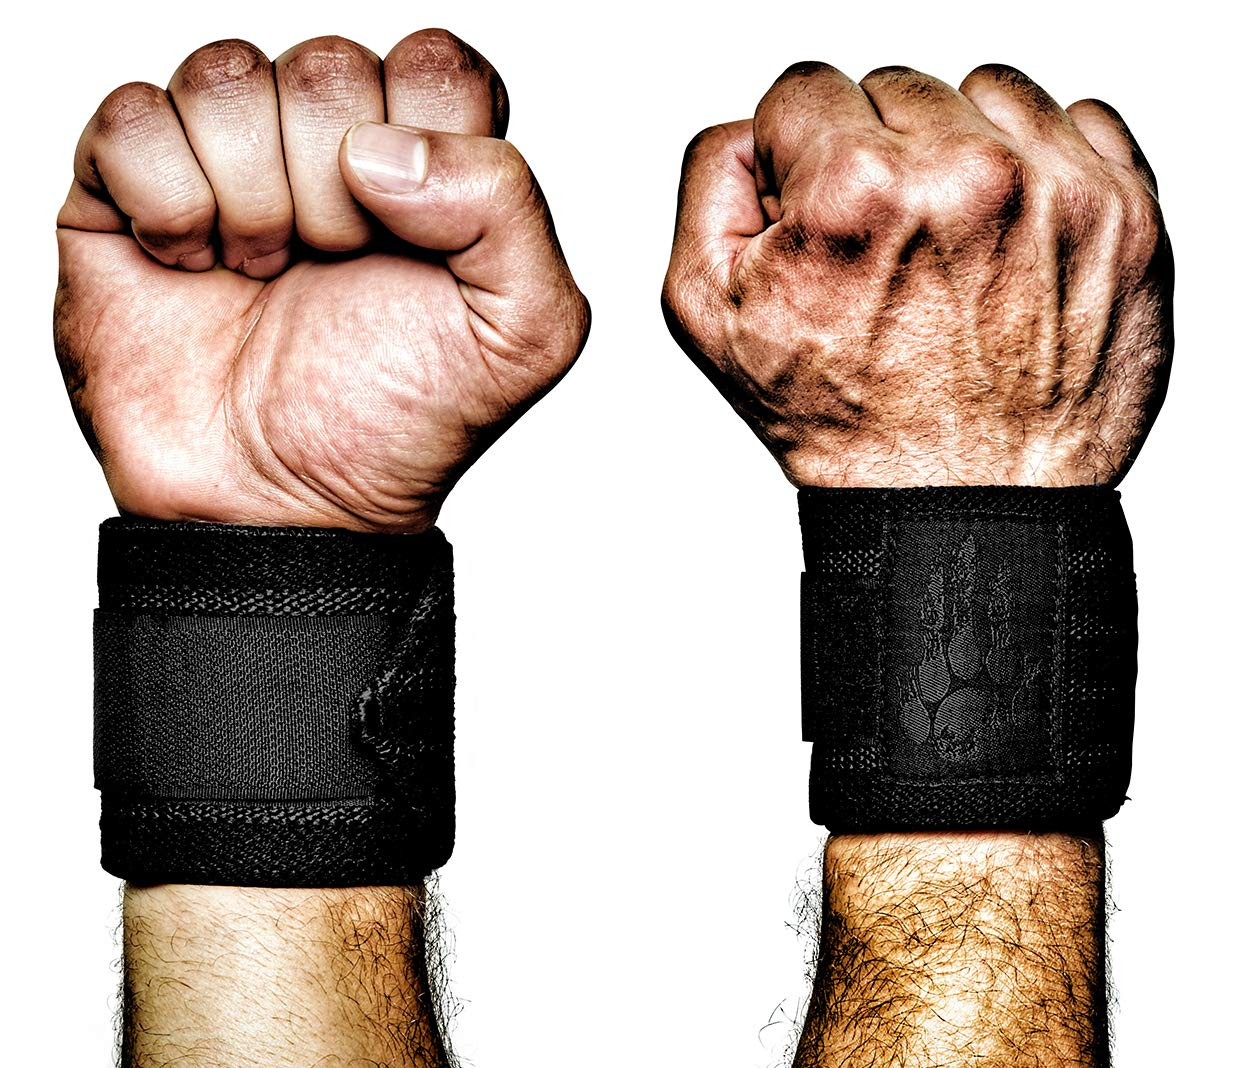 MANIMAL: The Best Weightlifting Straps with Superior Wrist Support, 1 Wrist Wraps Trusted by Professional Powerlifting, Strongman, Crossfit and Olympic Athletes - Night Stalker